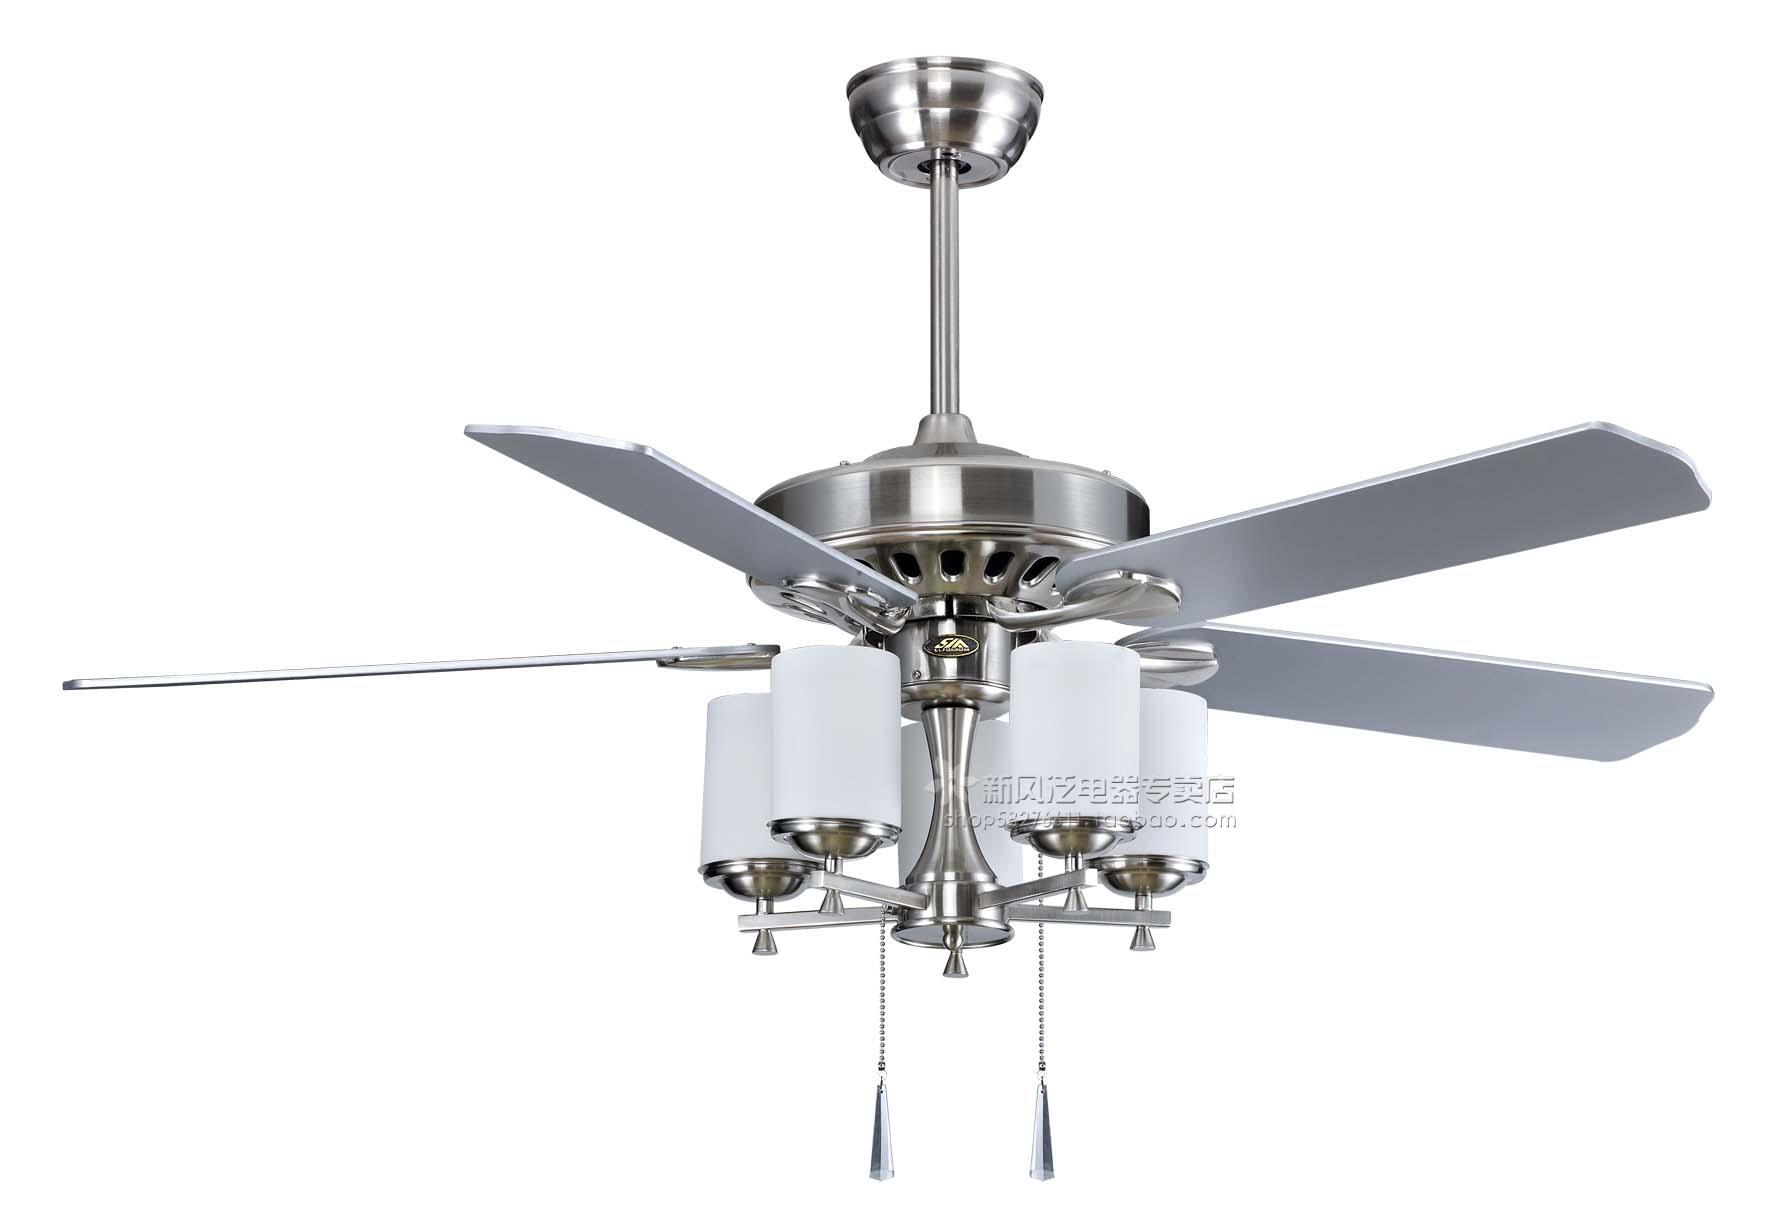 contemporary ceiling fans with light homesfeed. Black Bedroom Furniture Sets. Home Design Ideas